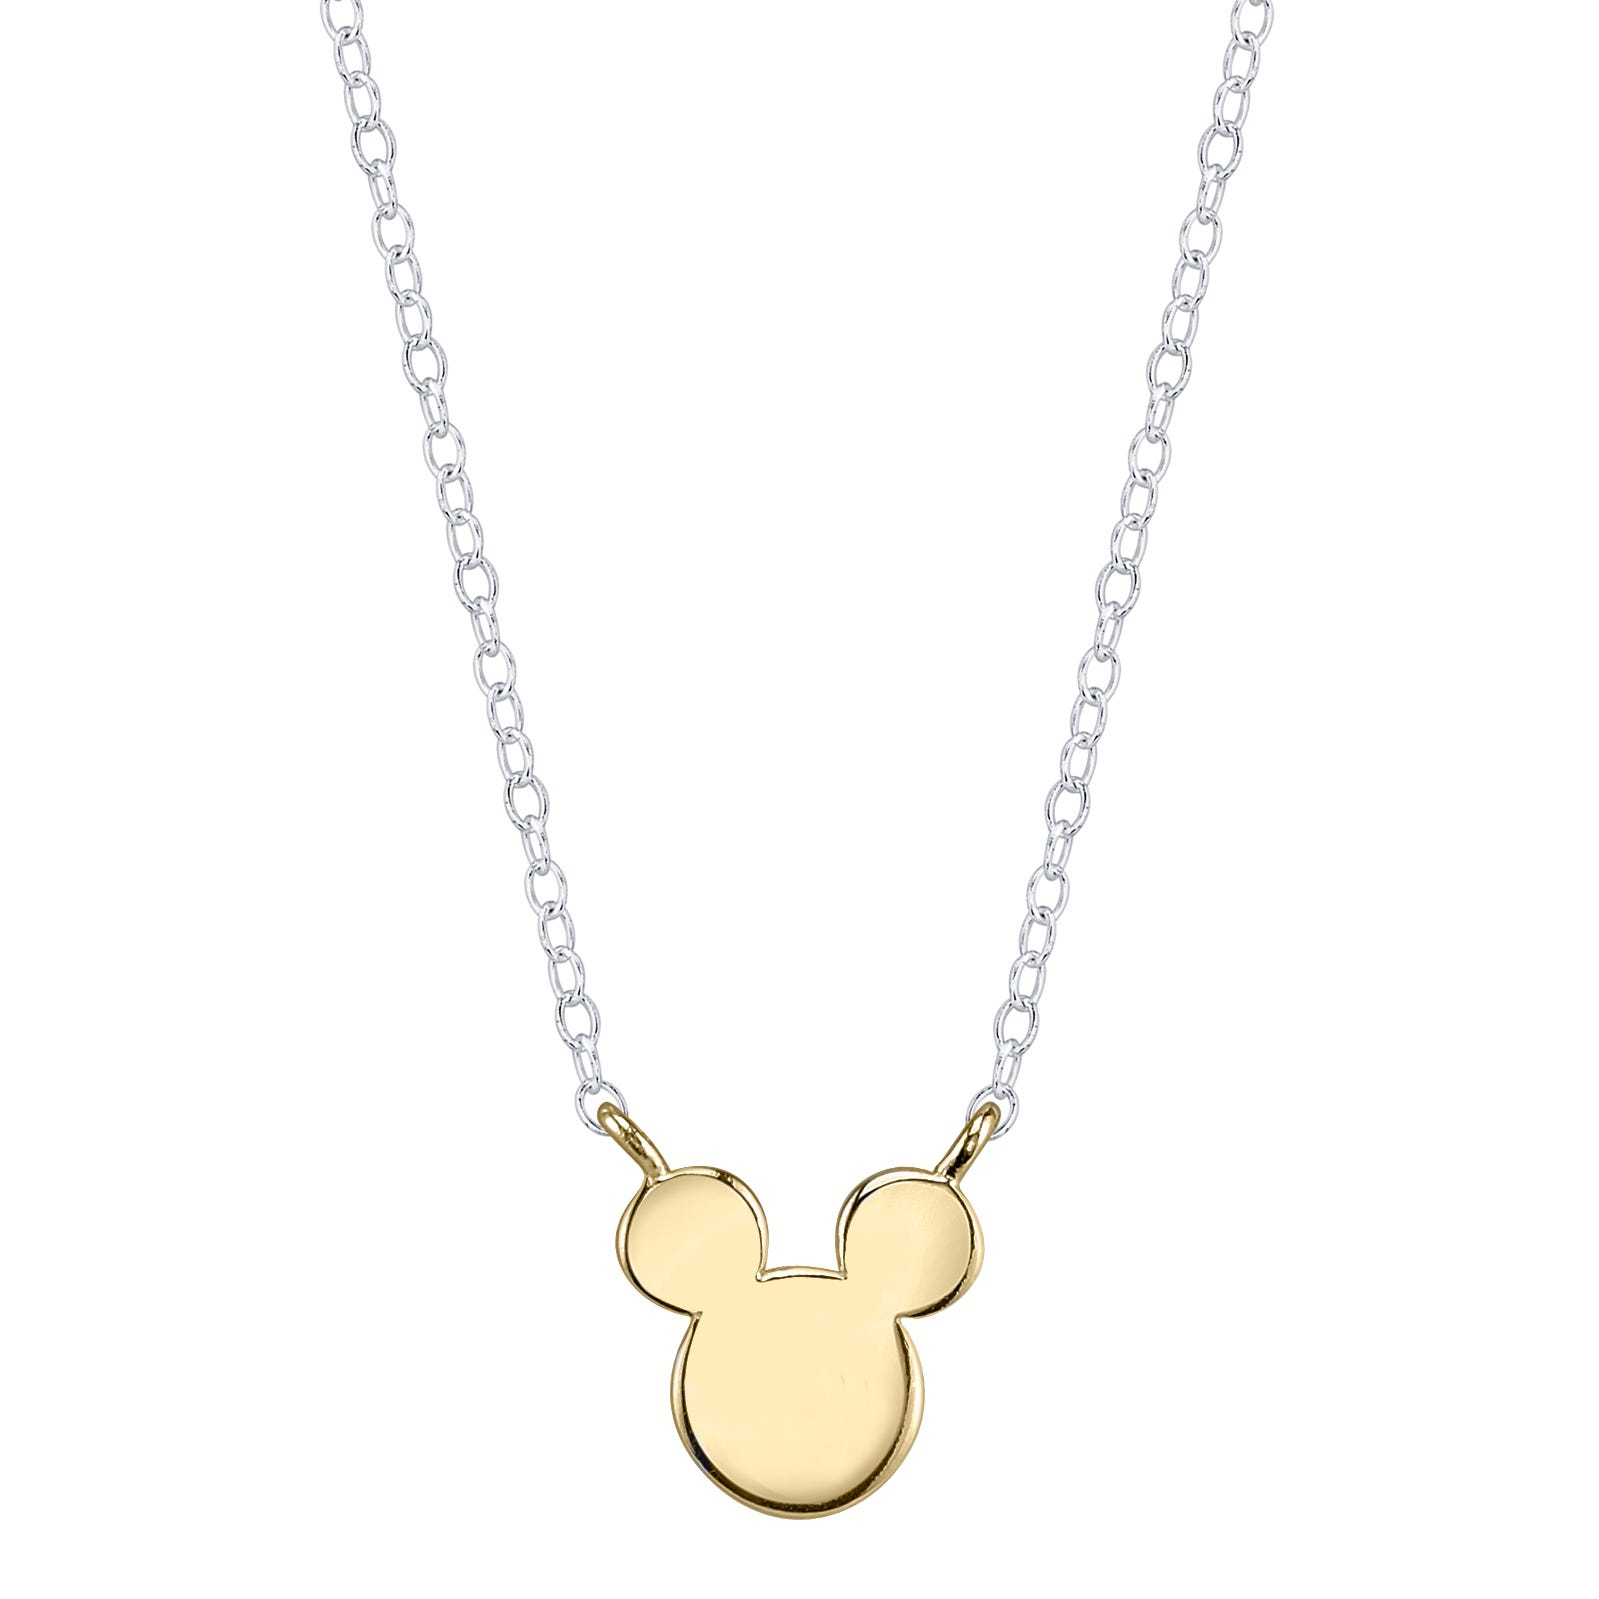 DISNEY© Iconic Mickey Mouse Necklace in 10k Yellow Gold